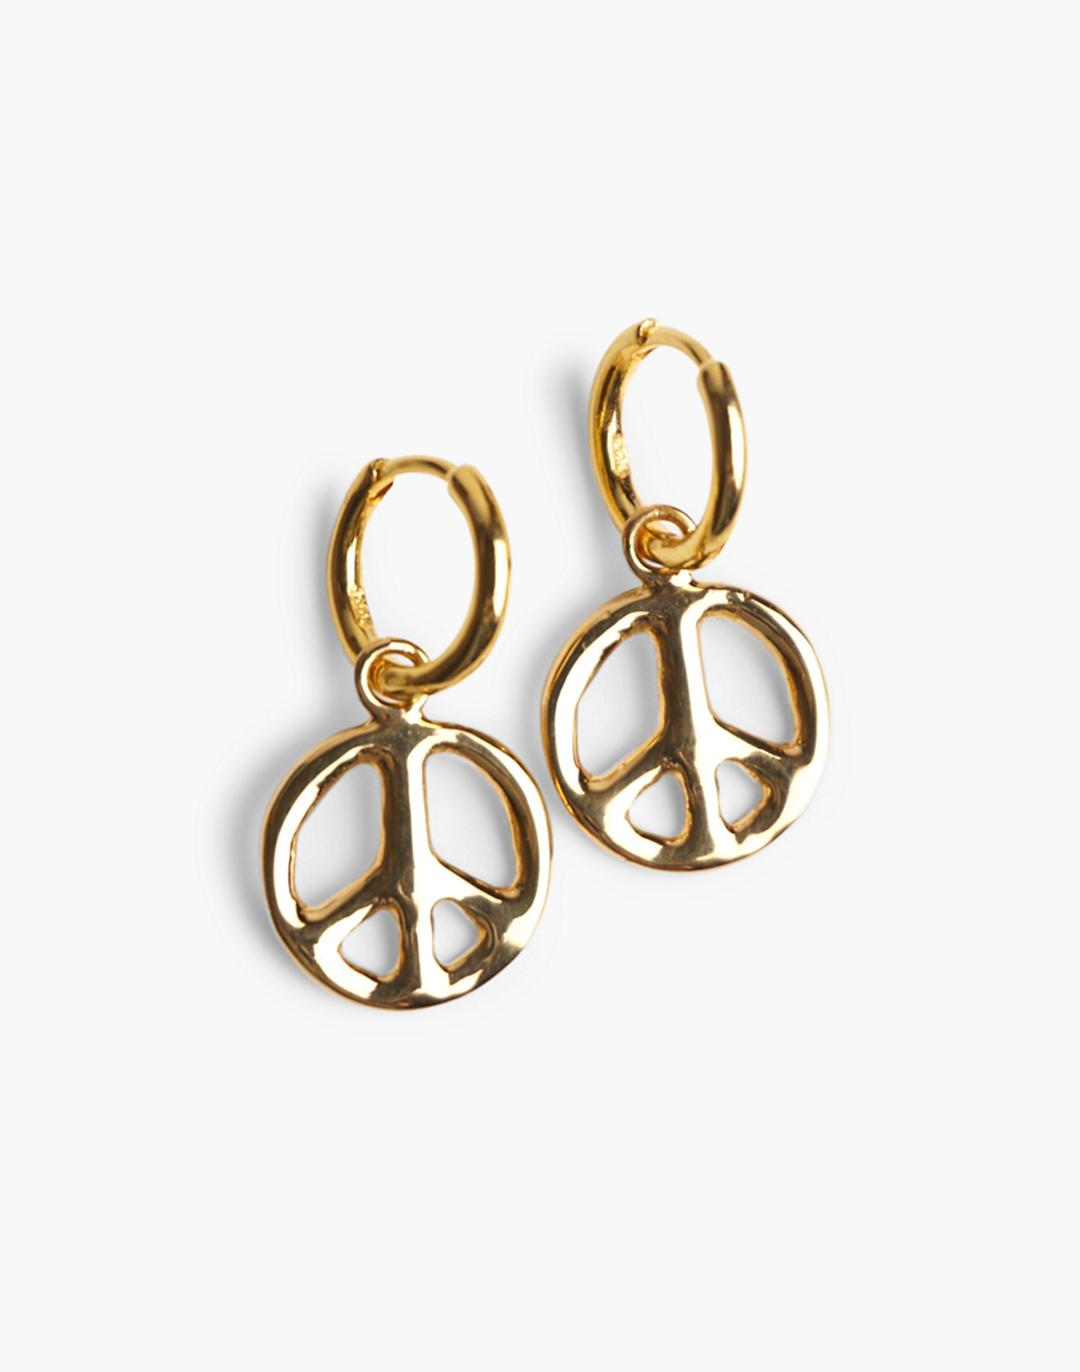 Charlotte Cauwe Studio 1969 Peace Sign Hoops in Gold